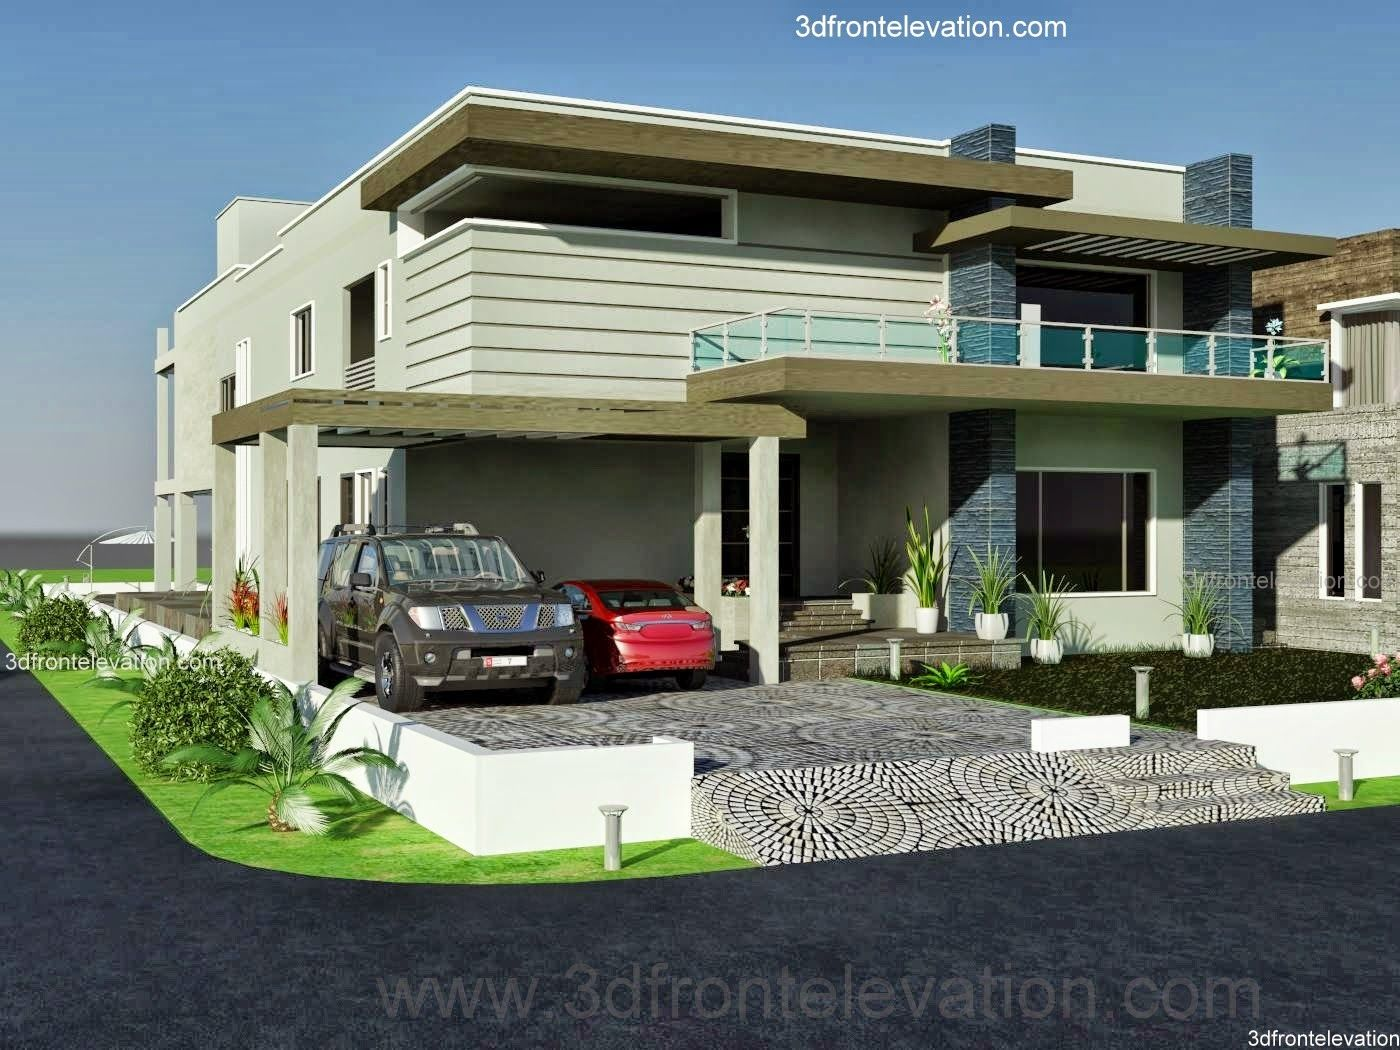 front elevation kanal dha karachi modern contemporary house design with swimming plool also best home elevations images homes decor rh pinterest